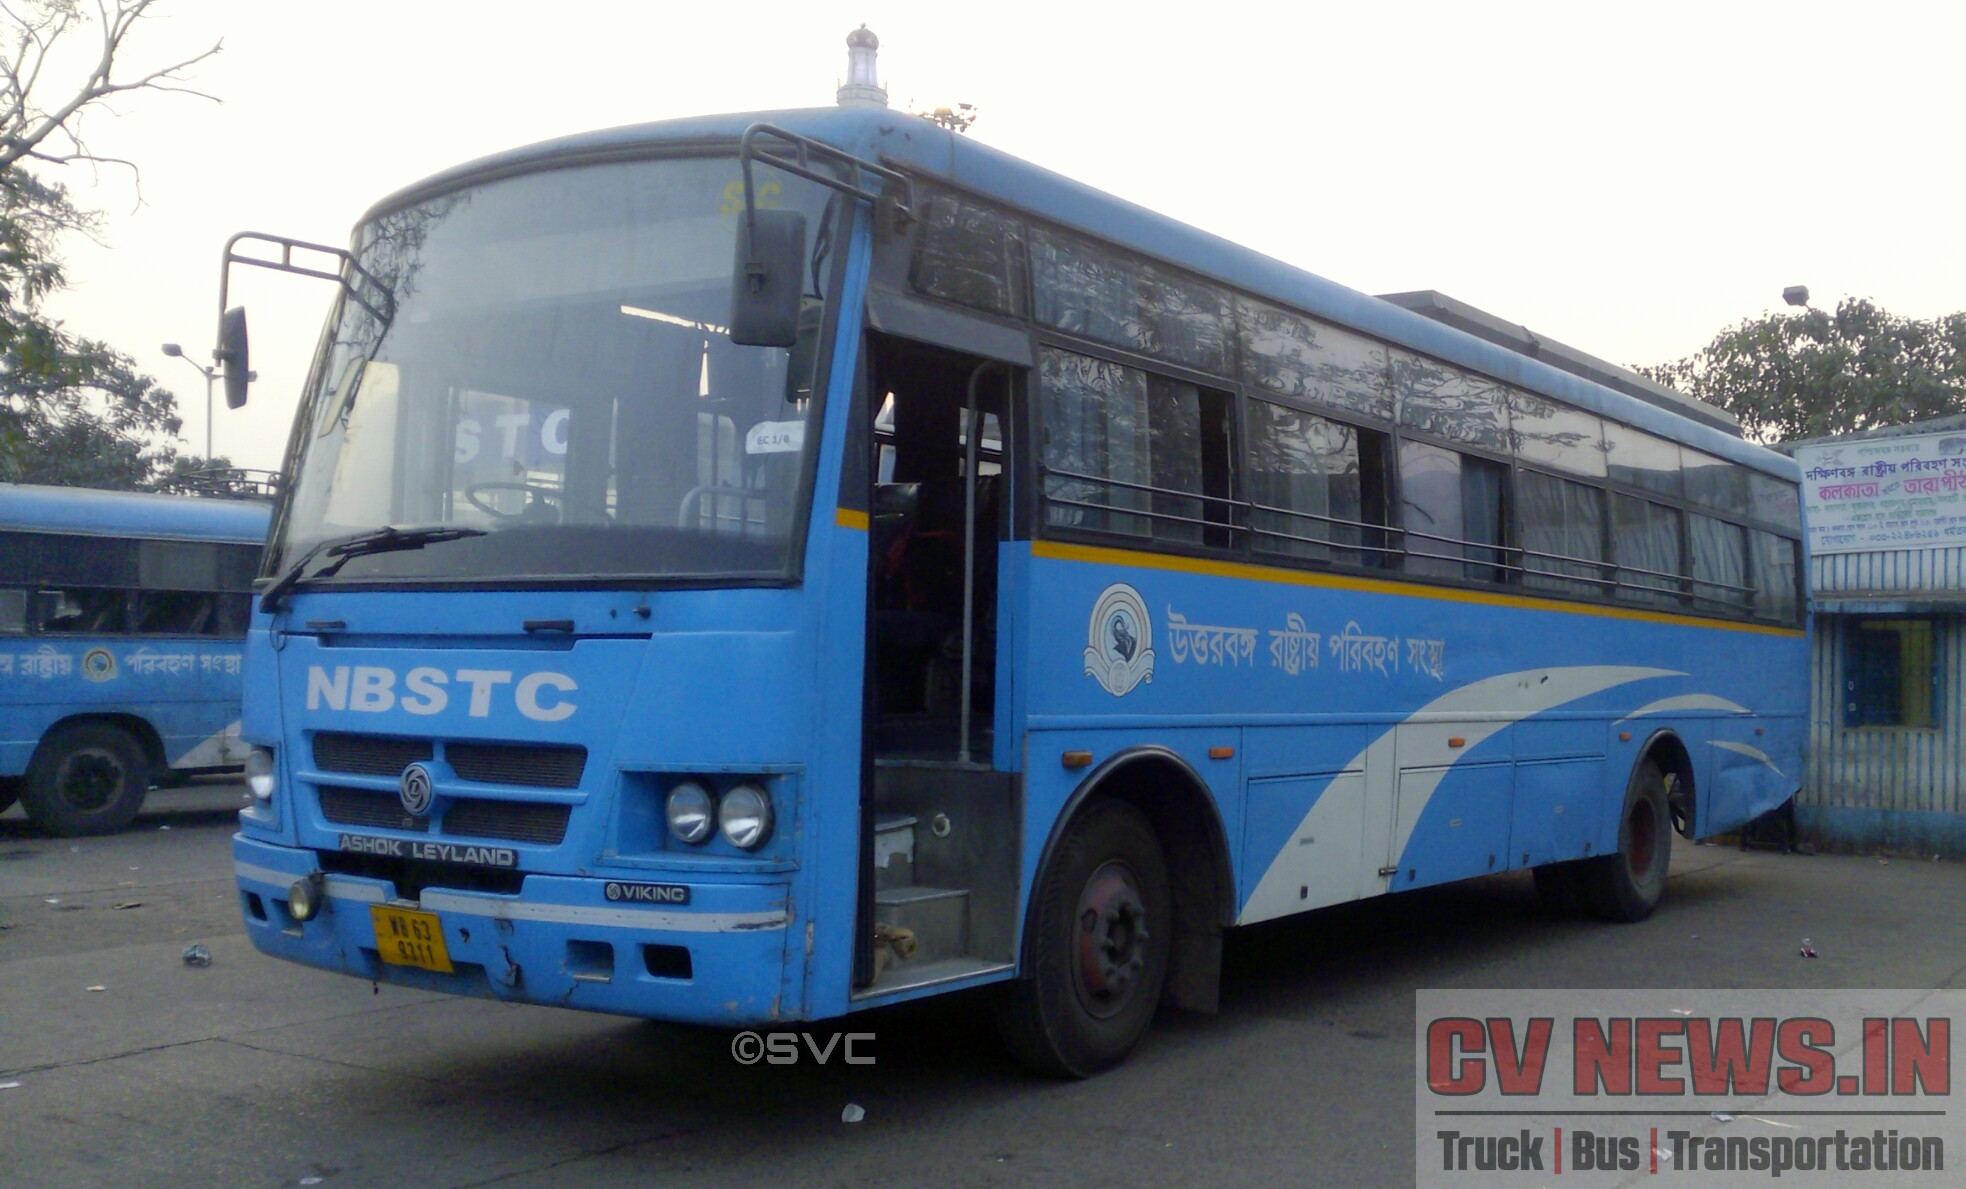 NBSTC Rocket bus built on Ashok Leyland Viking Chassis